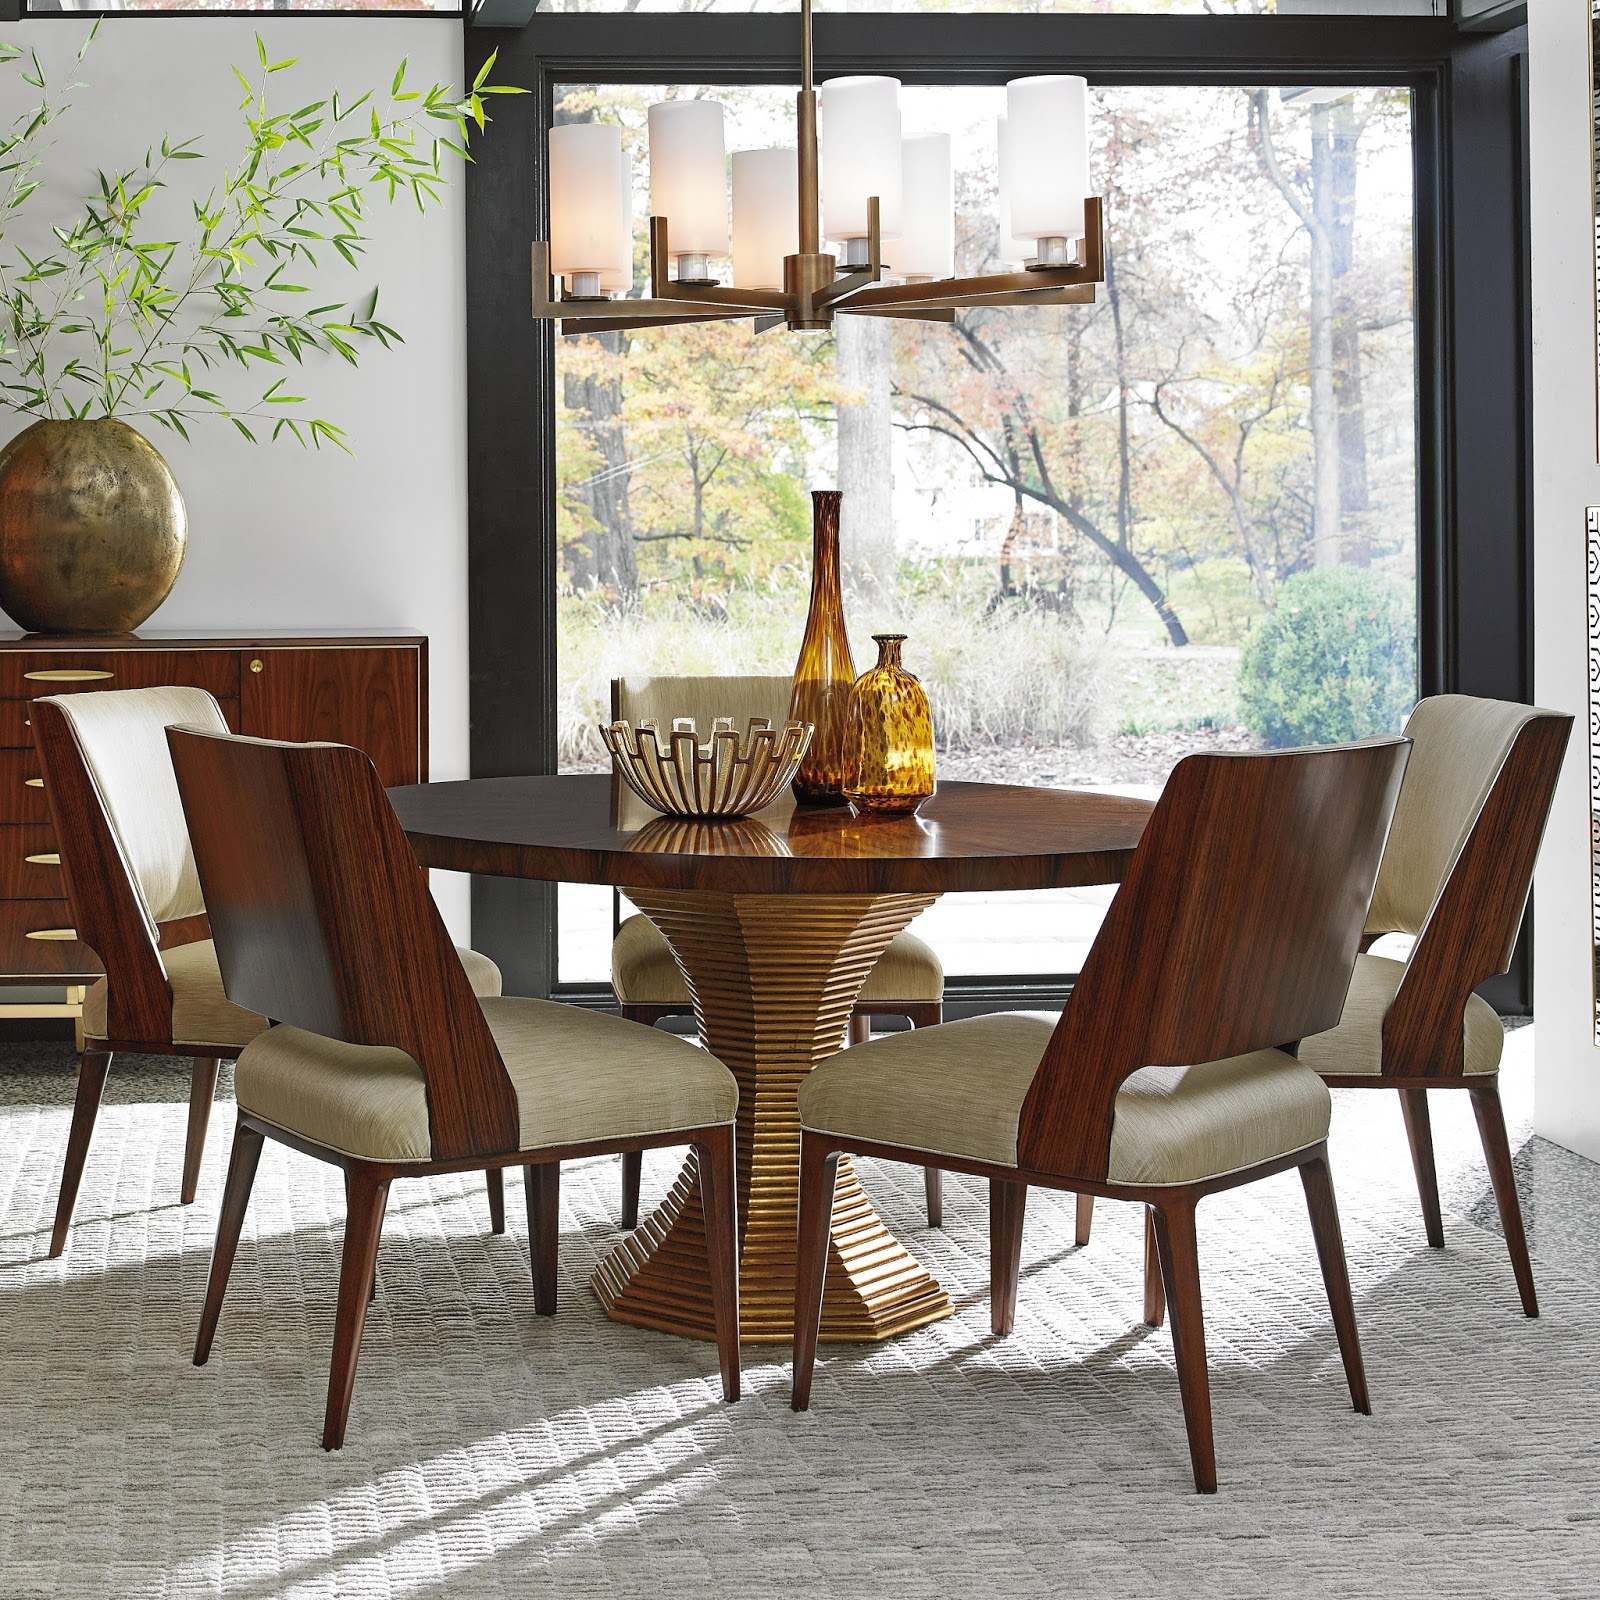 Lexington Dining Room Furniture: Baer's Custom Furniture: What's Your Lexington Dining Room